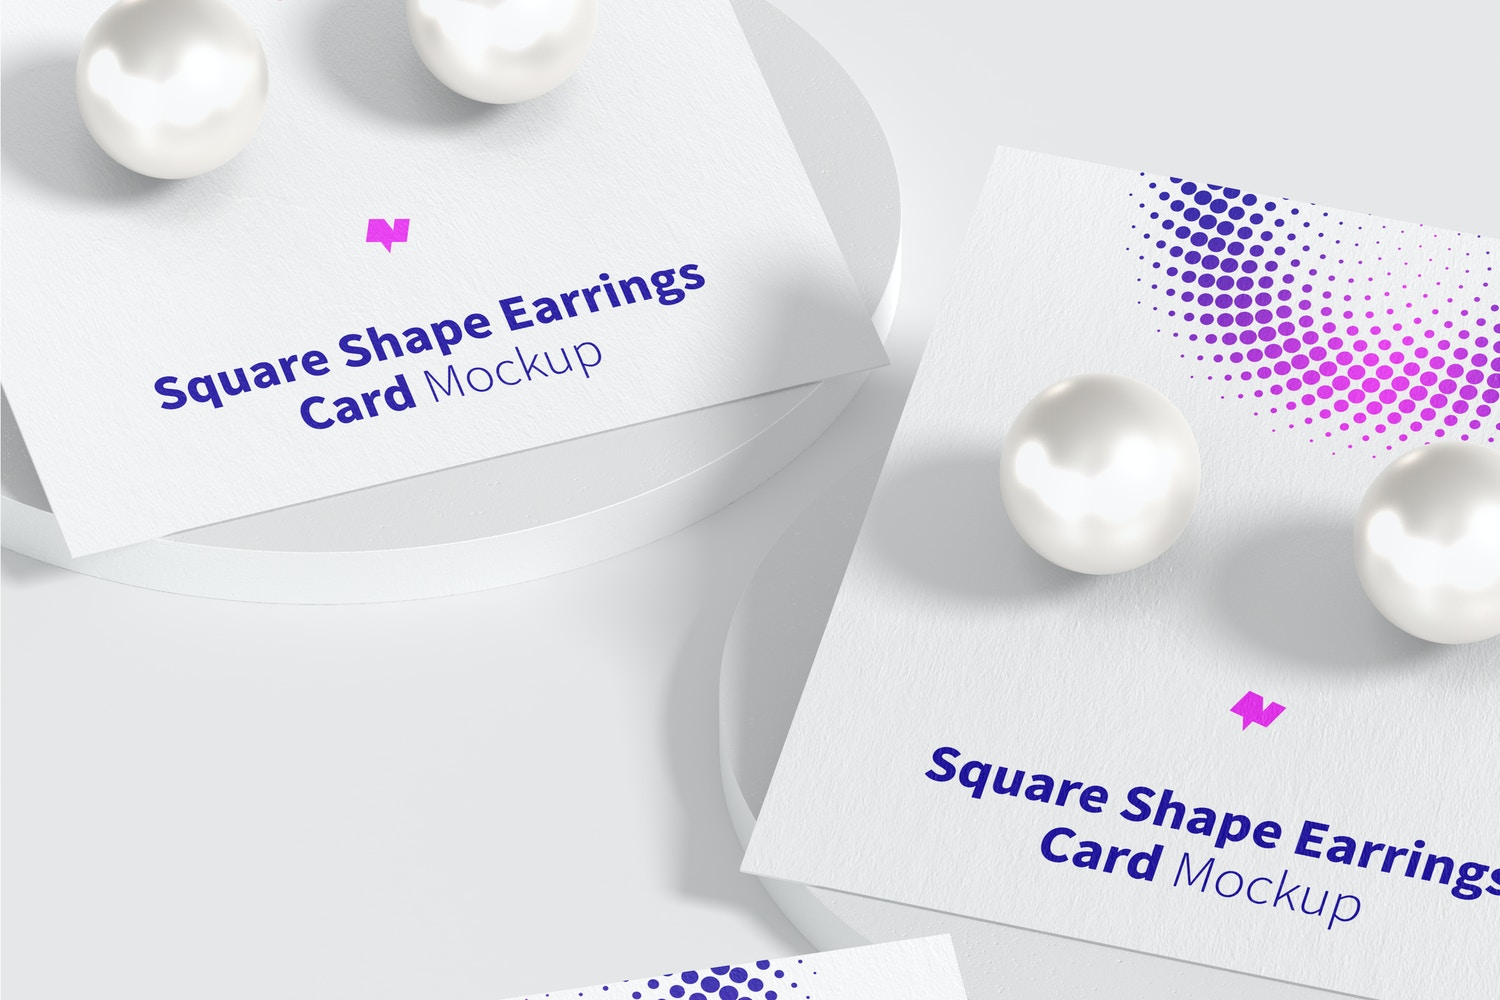 Square Shape Earrings Cards Mockup, Perspective